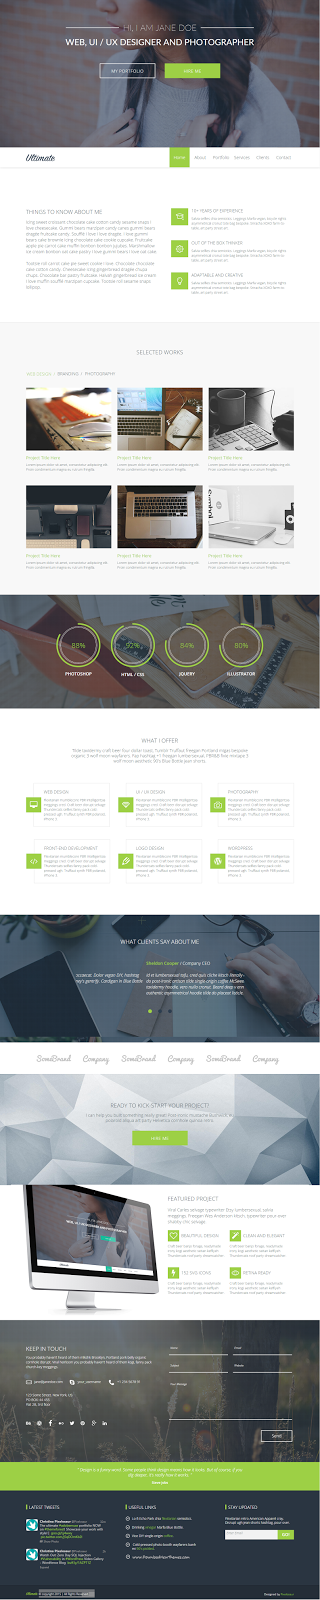 Best One Page Adobe Muse Template